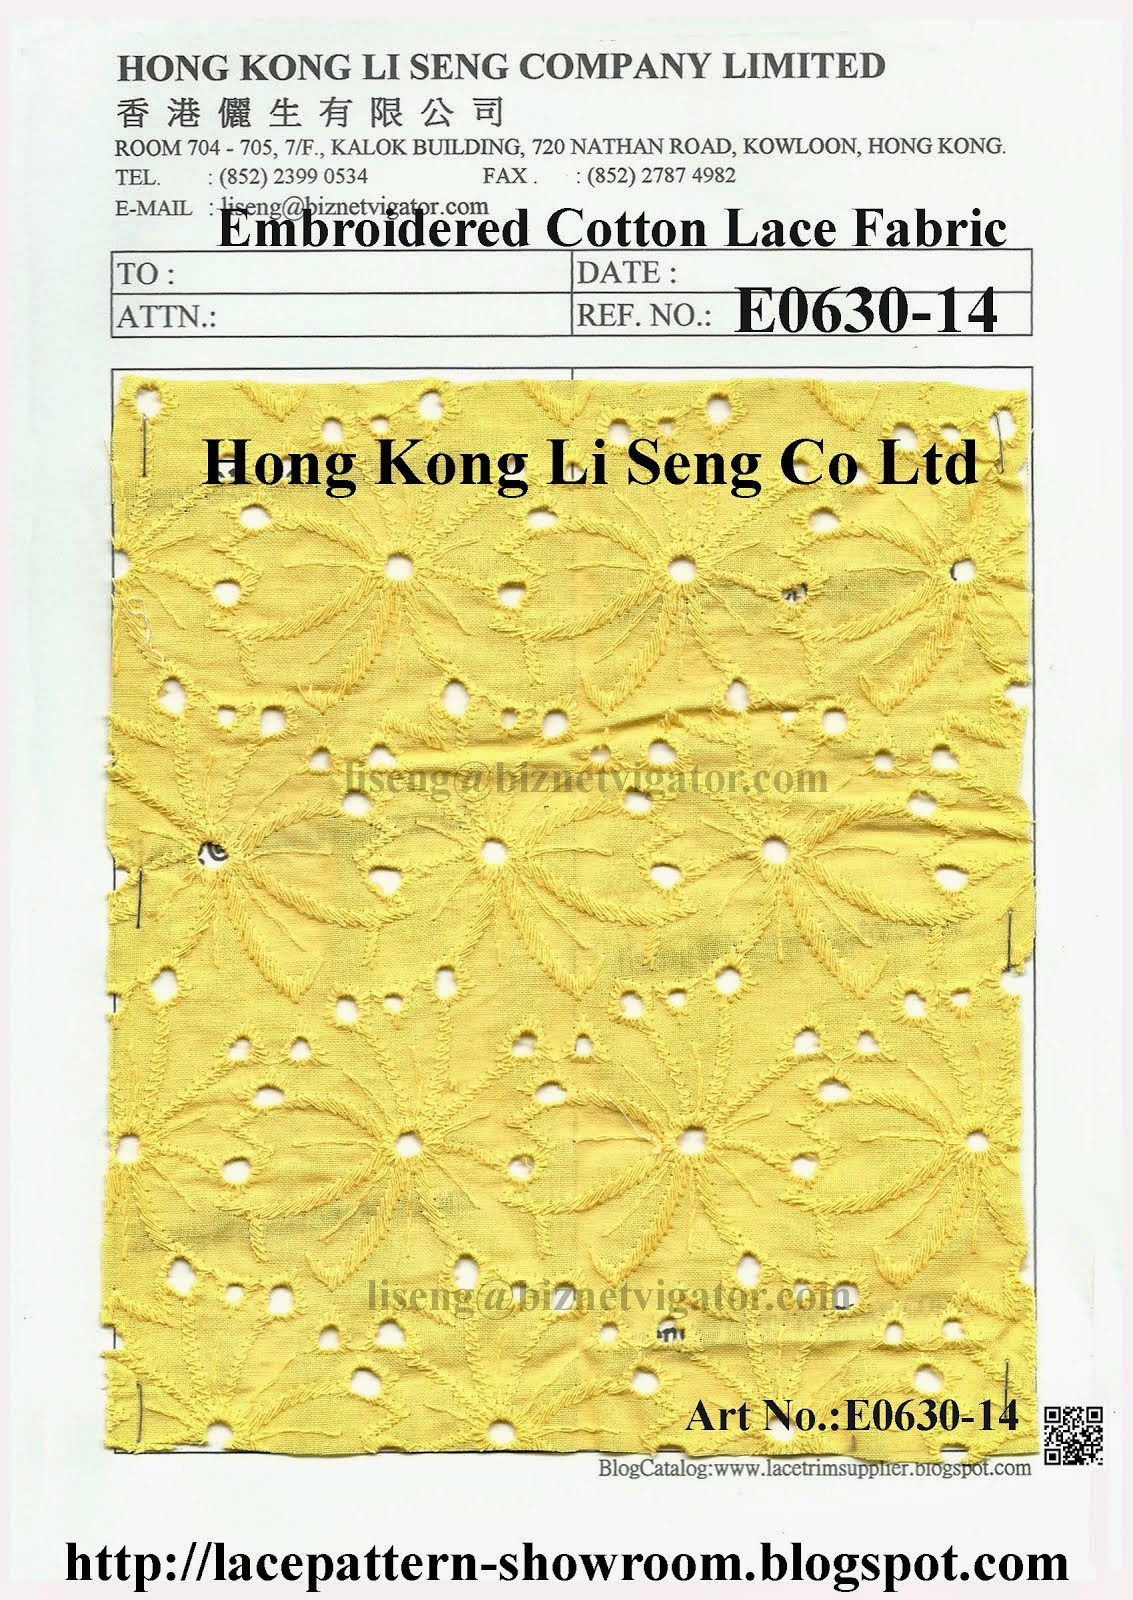 New Lace Pattern Embroidered Cotton Fabric Manufacturer - Hong Kong Li Seng Co Ltd